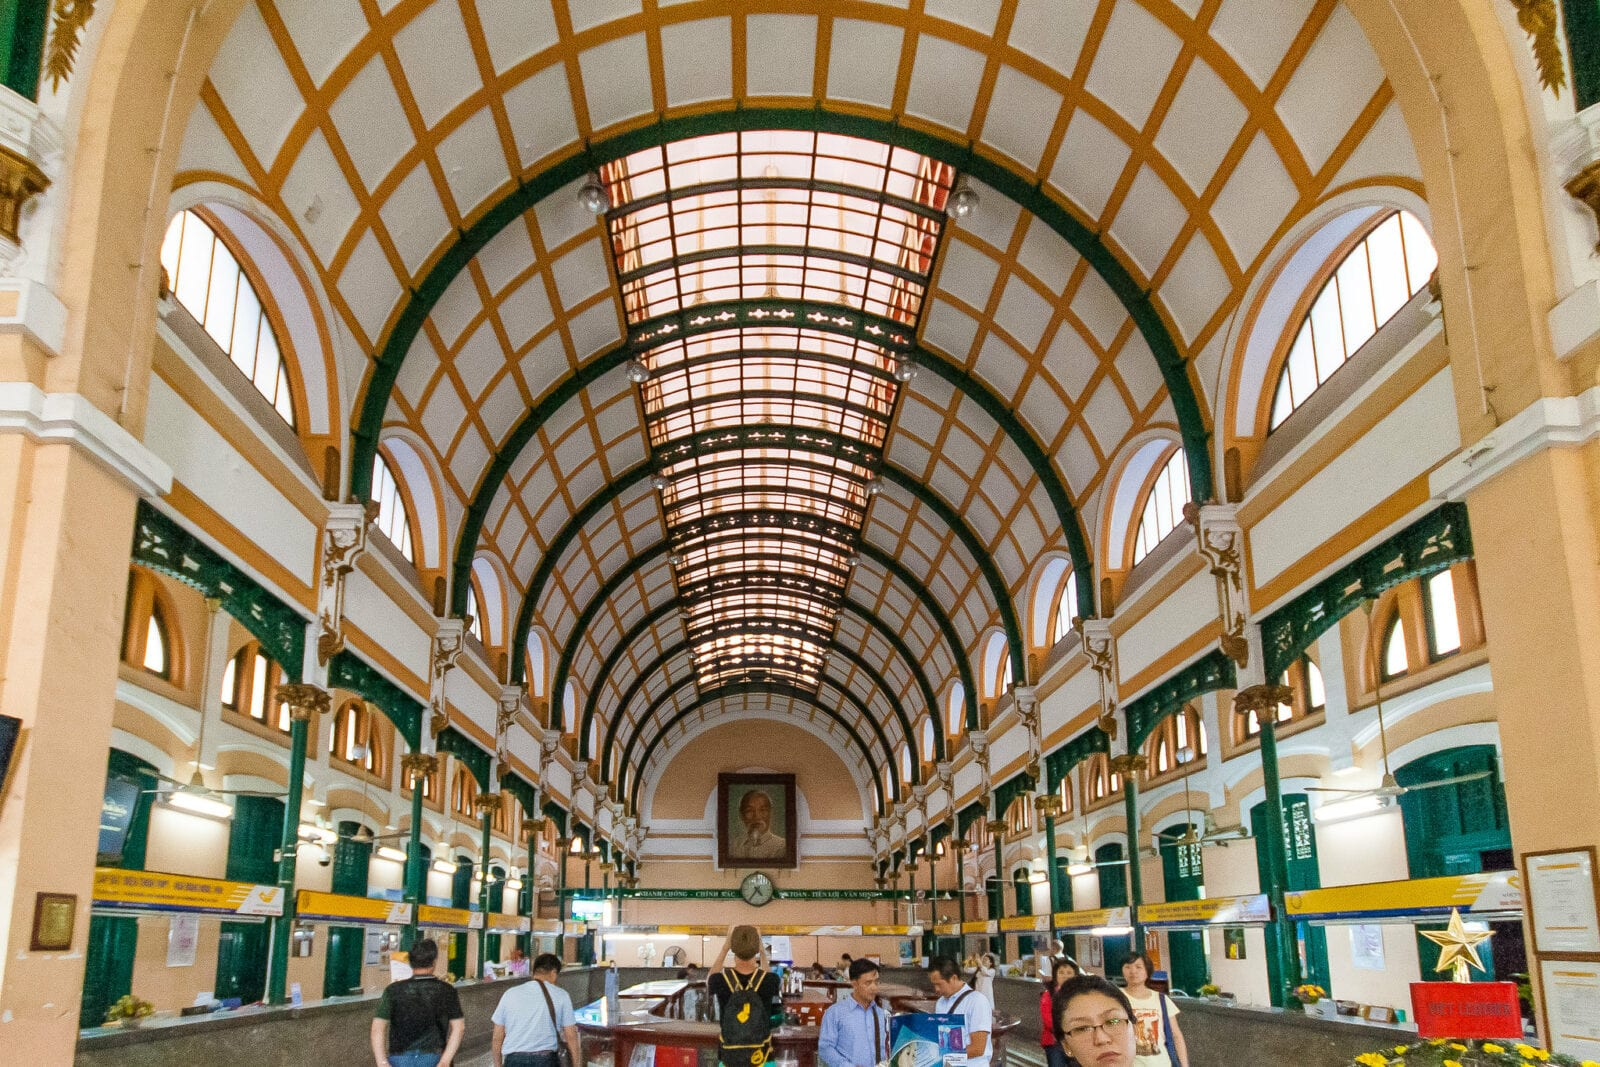 Image of the interior of the Saigon Central Post Office